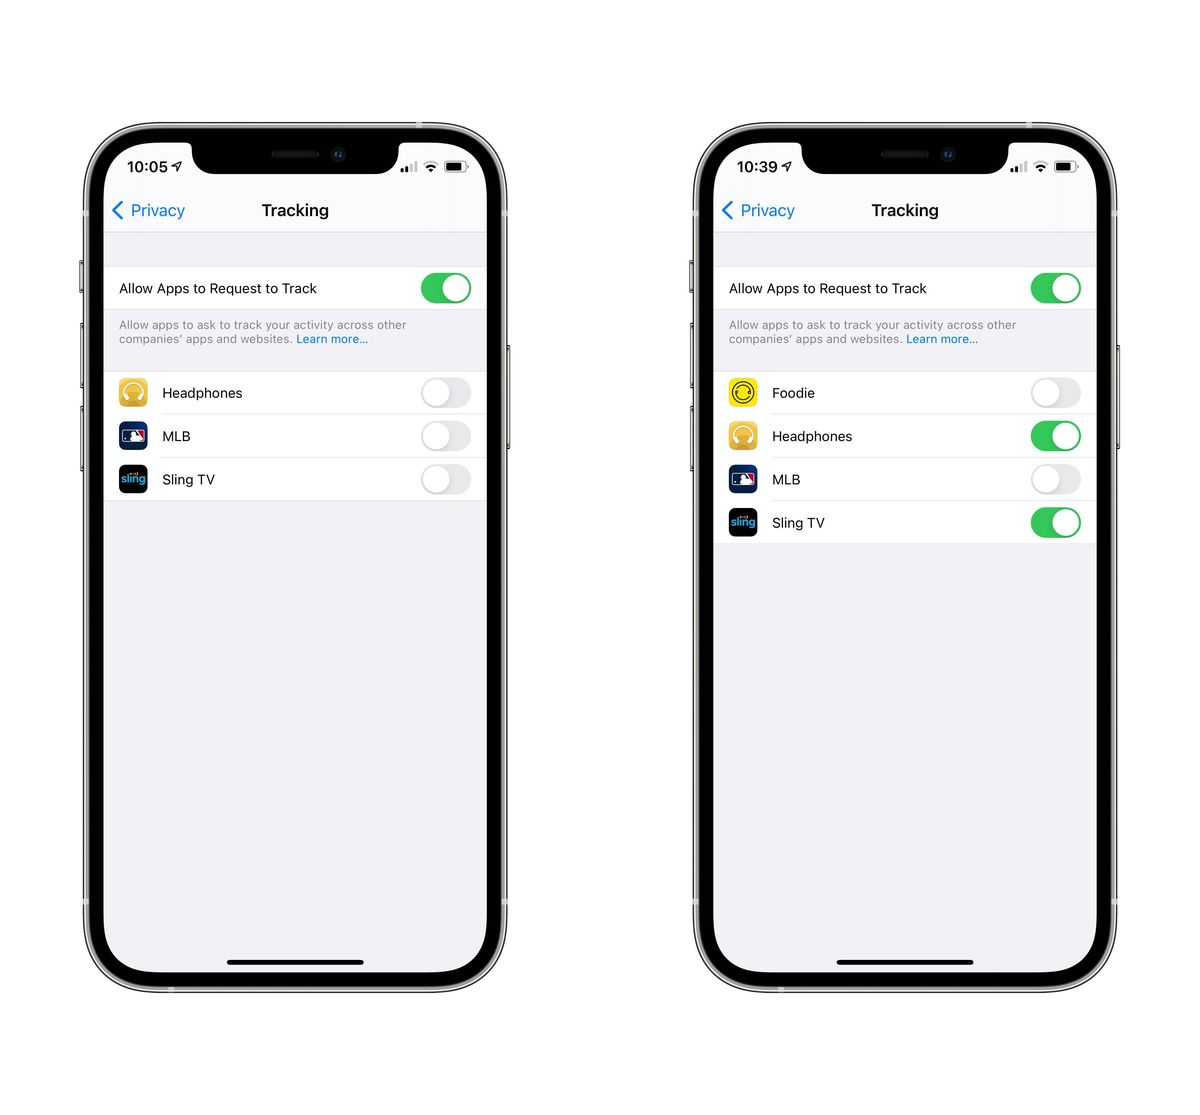 Go to Settings > Privacy > Tracking to change the settings for specific or all apps.